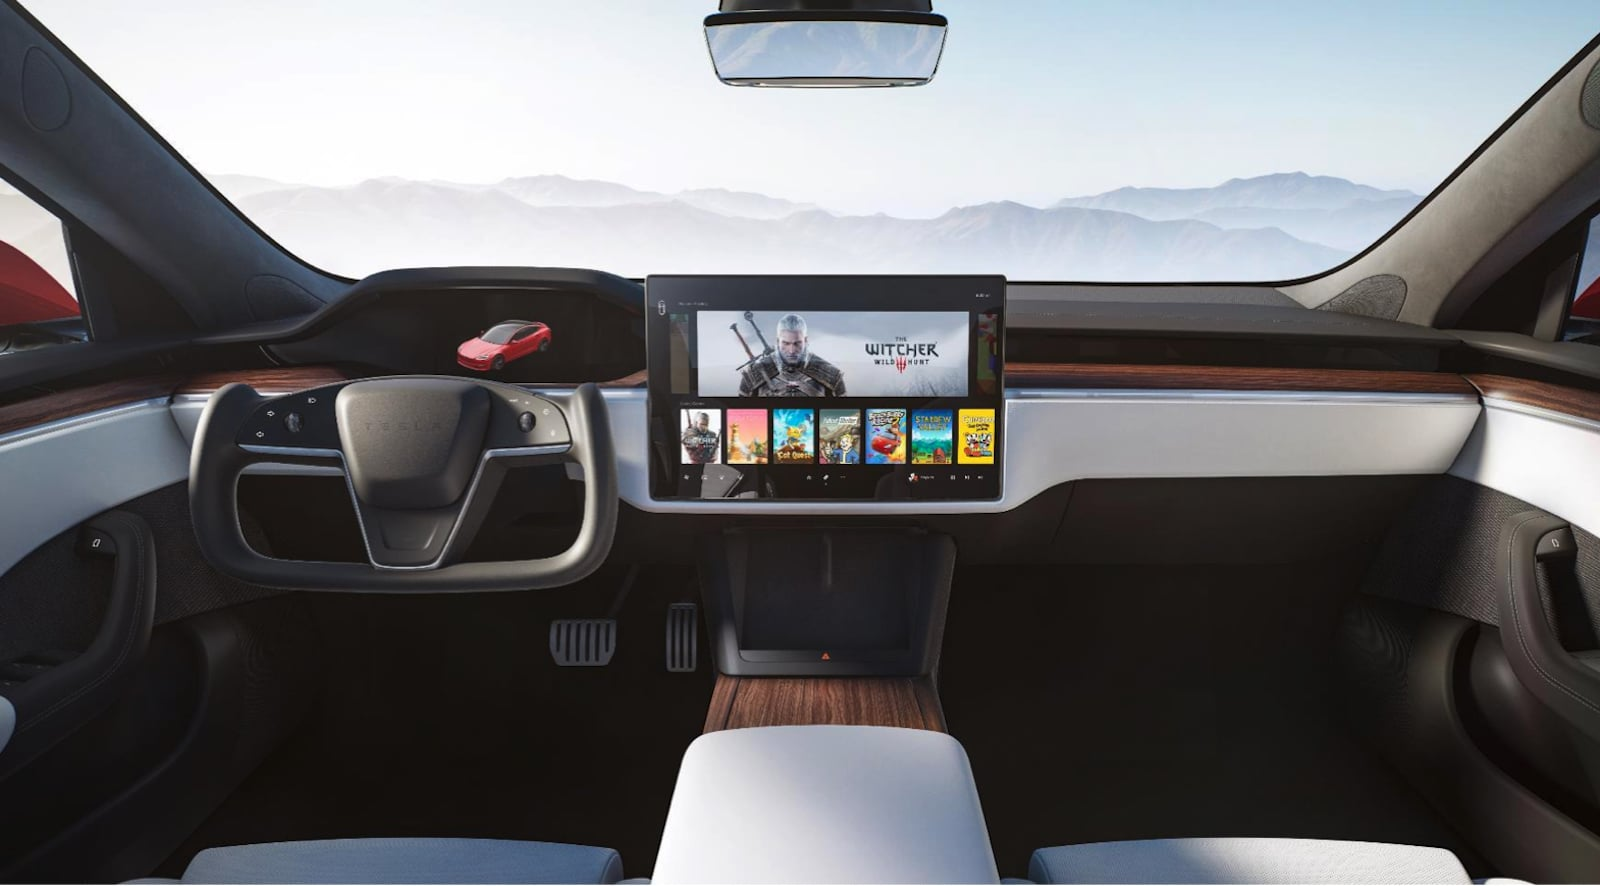 Automakers Getting Yoked: Are Yoke-Style Steering Wheels a Styling Affectation or a Coming Trend? - The Detroit Bureau